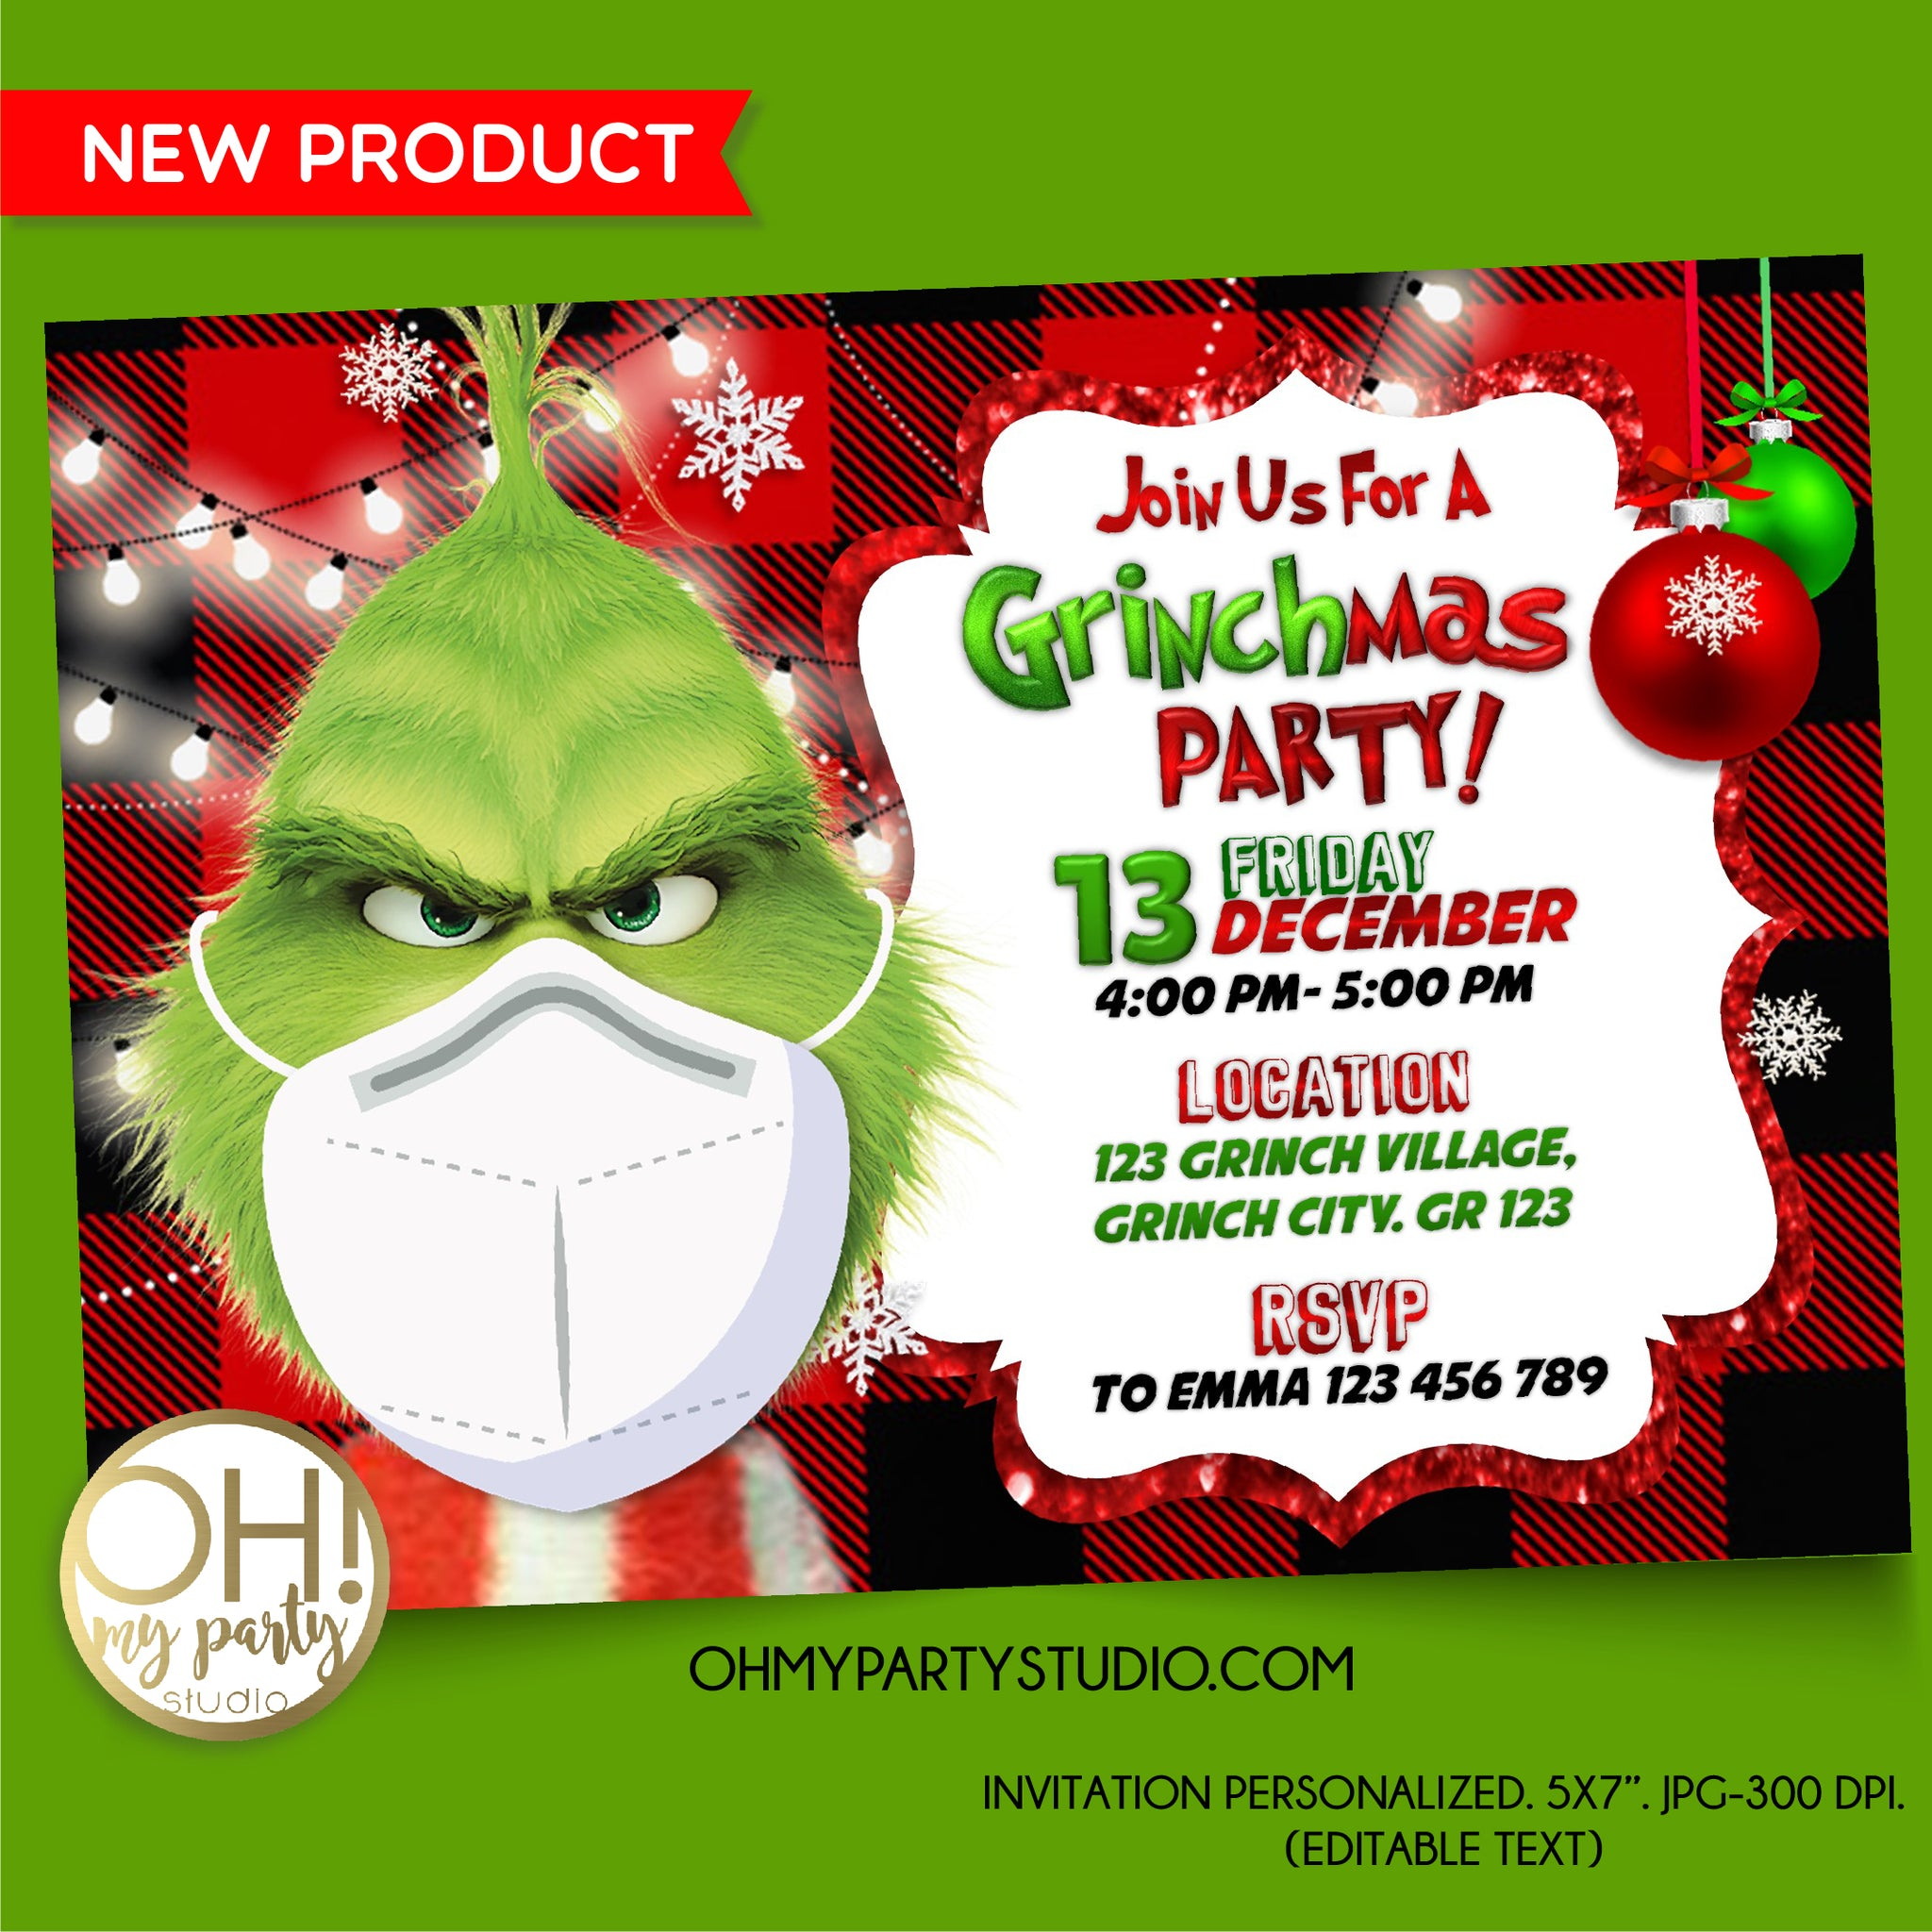 GRINCHMAS PARTY, GRINCH INVITATION, GRINCH INVITATIONS, GRINCH PARTY PRINTABLES, GRINCH DECORATIONS, GRINCH INVITE, GRINCH CARD, GRINCH CHRISTMAS PARTY, GRINCH PARTY IDEAS, GRINCH INVITACIÓN, GRINCH FIESTA, GRINCH BIRTHDAY PARTY IDEAS, GRINCHMAS PARTY, GRINCHMAS INVITE, GRINCHMAS PARTY INVITATION, GRINCHMAS INVITATION, GRINCHMAS DECORATIONS, GRINCH HOLIDAY PARTY, GRINCH HOLIDAY CHEER PARTY